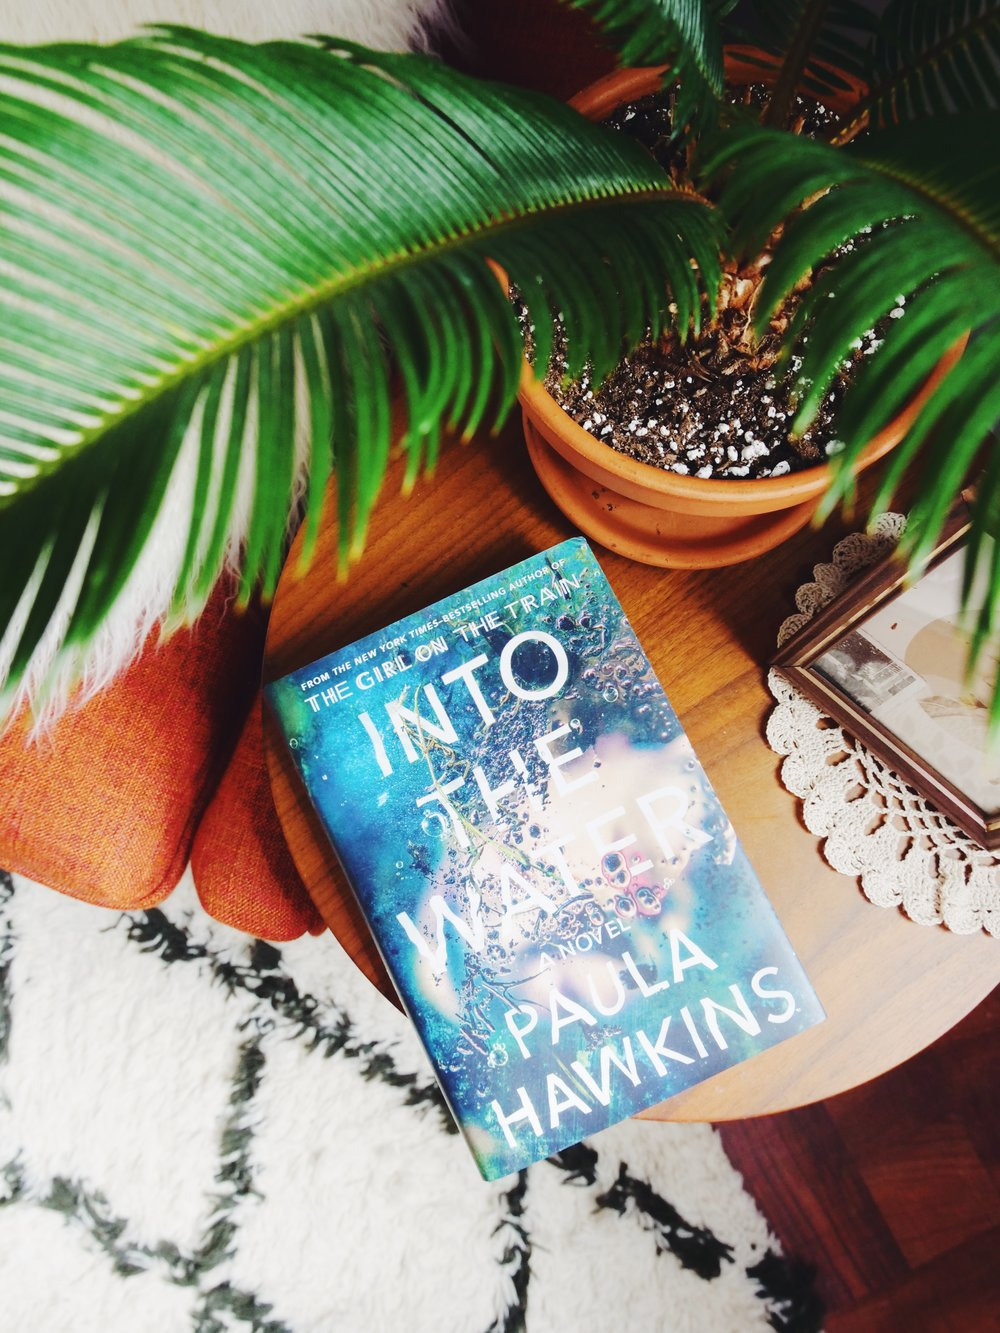 book 3 :  into the water  by paula hawkins  i read  girl on the train  by paula hawkins and loved it. so when i saw she had come out with another book i just had to buy it! i am so, so excited to get to reading this! no spoilers please if you have already read it! :)